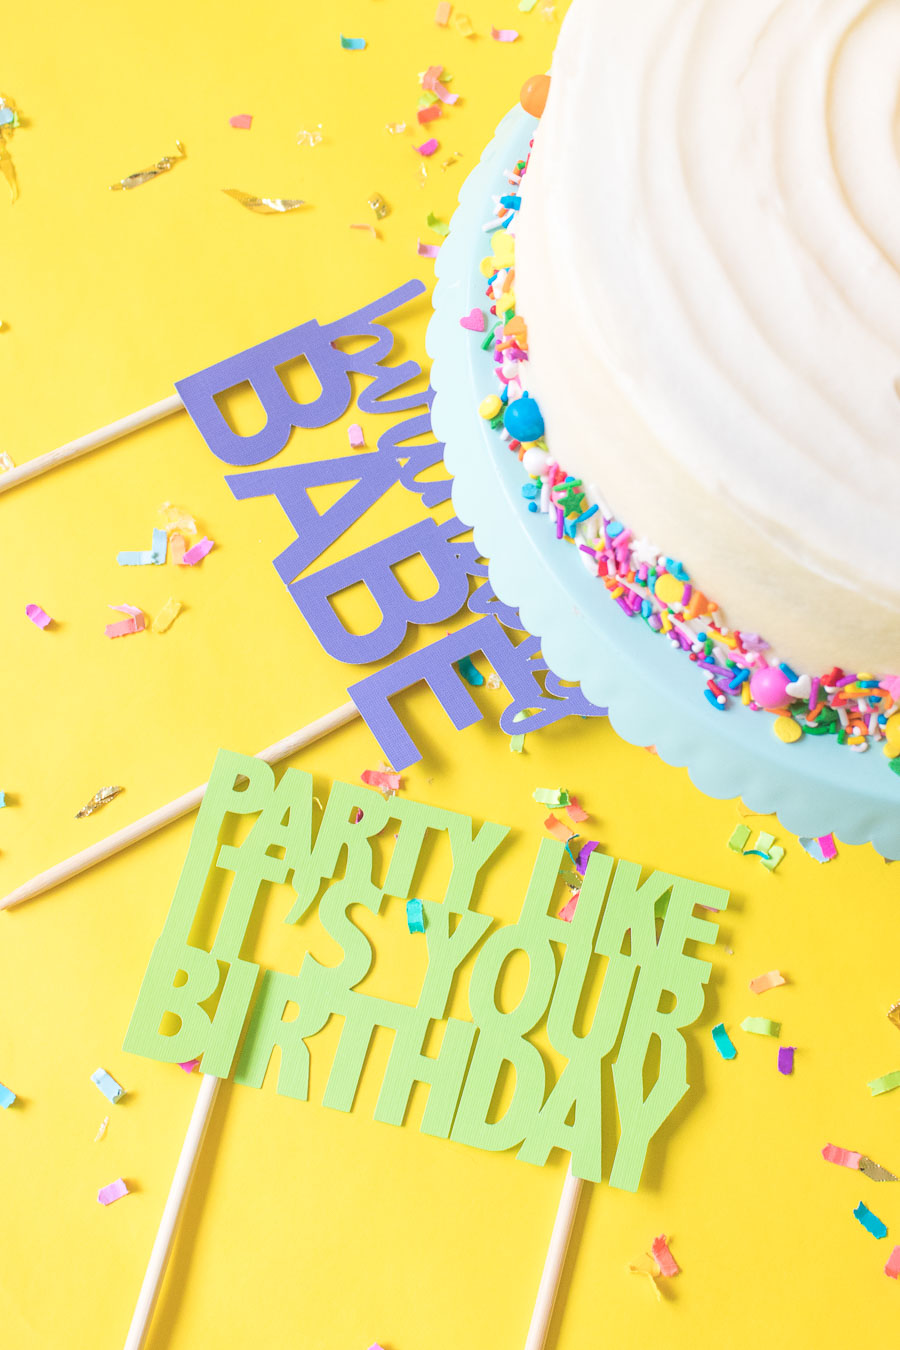 Printable Cake Toppers for Birthdays + SVG Templates! | Club Crafted